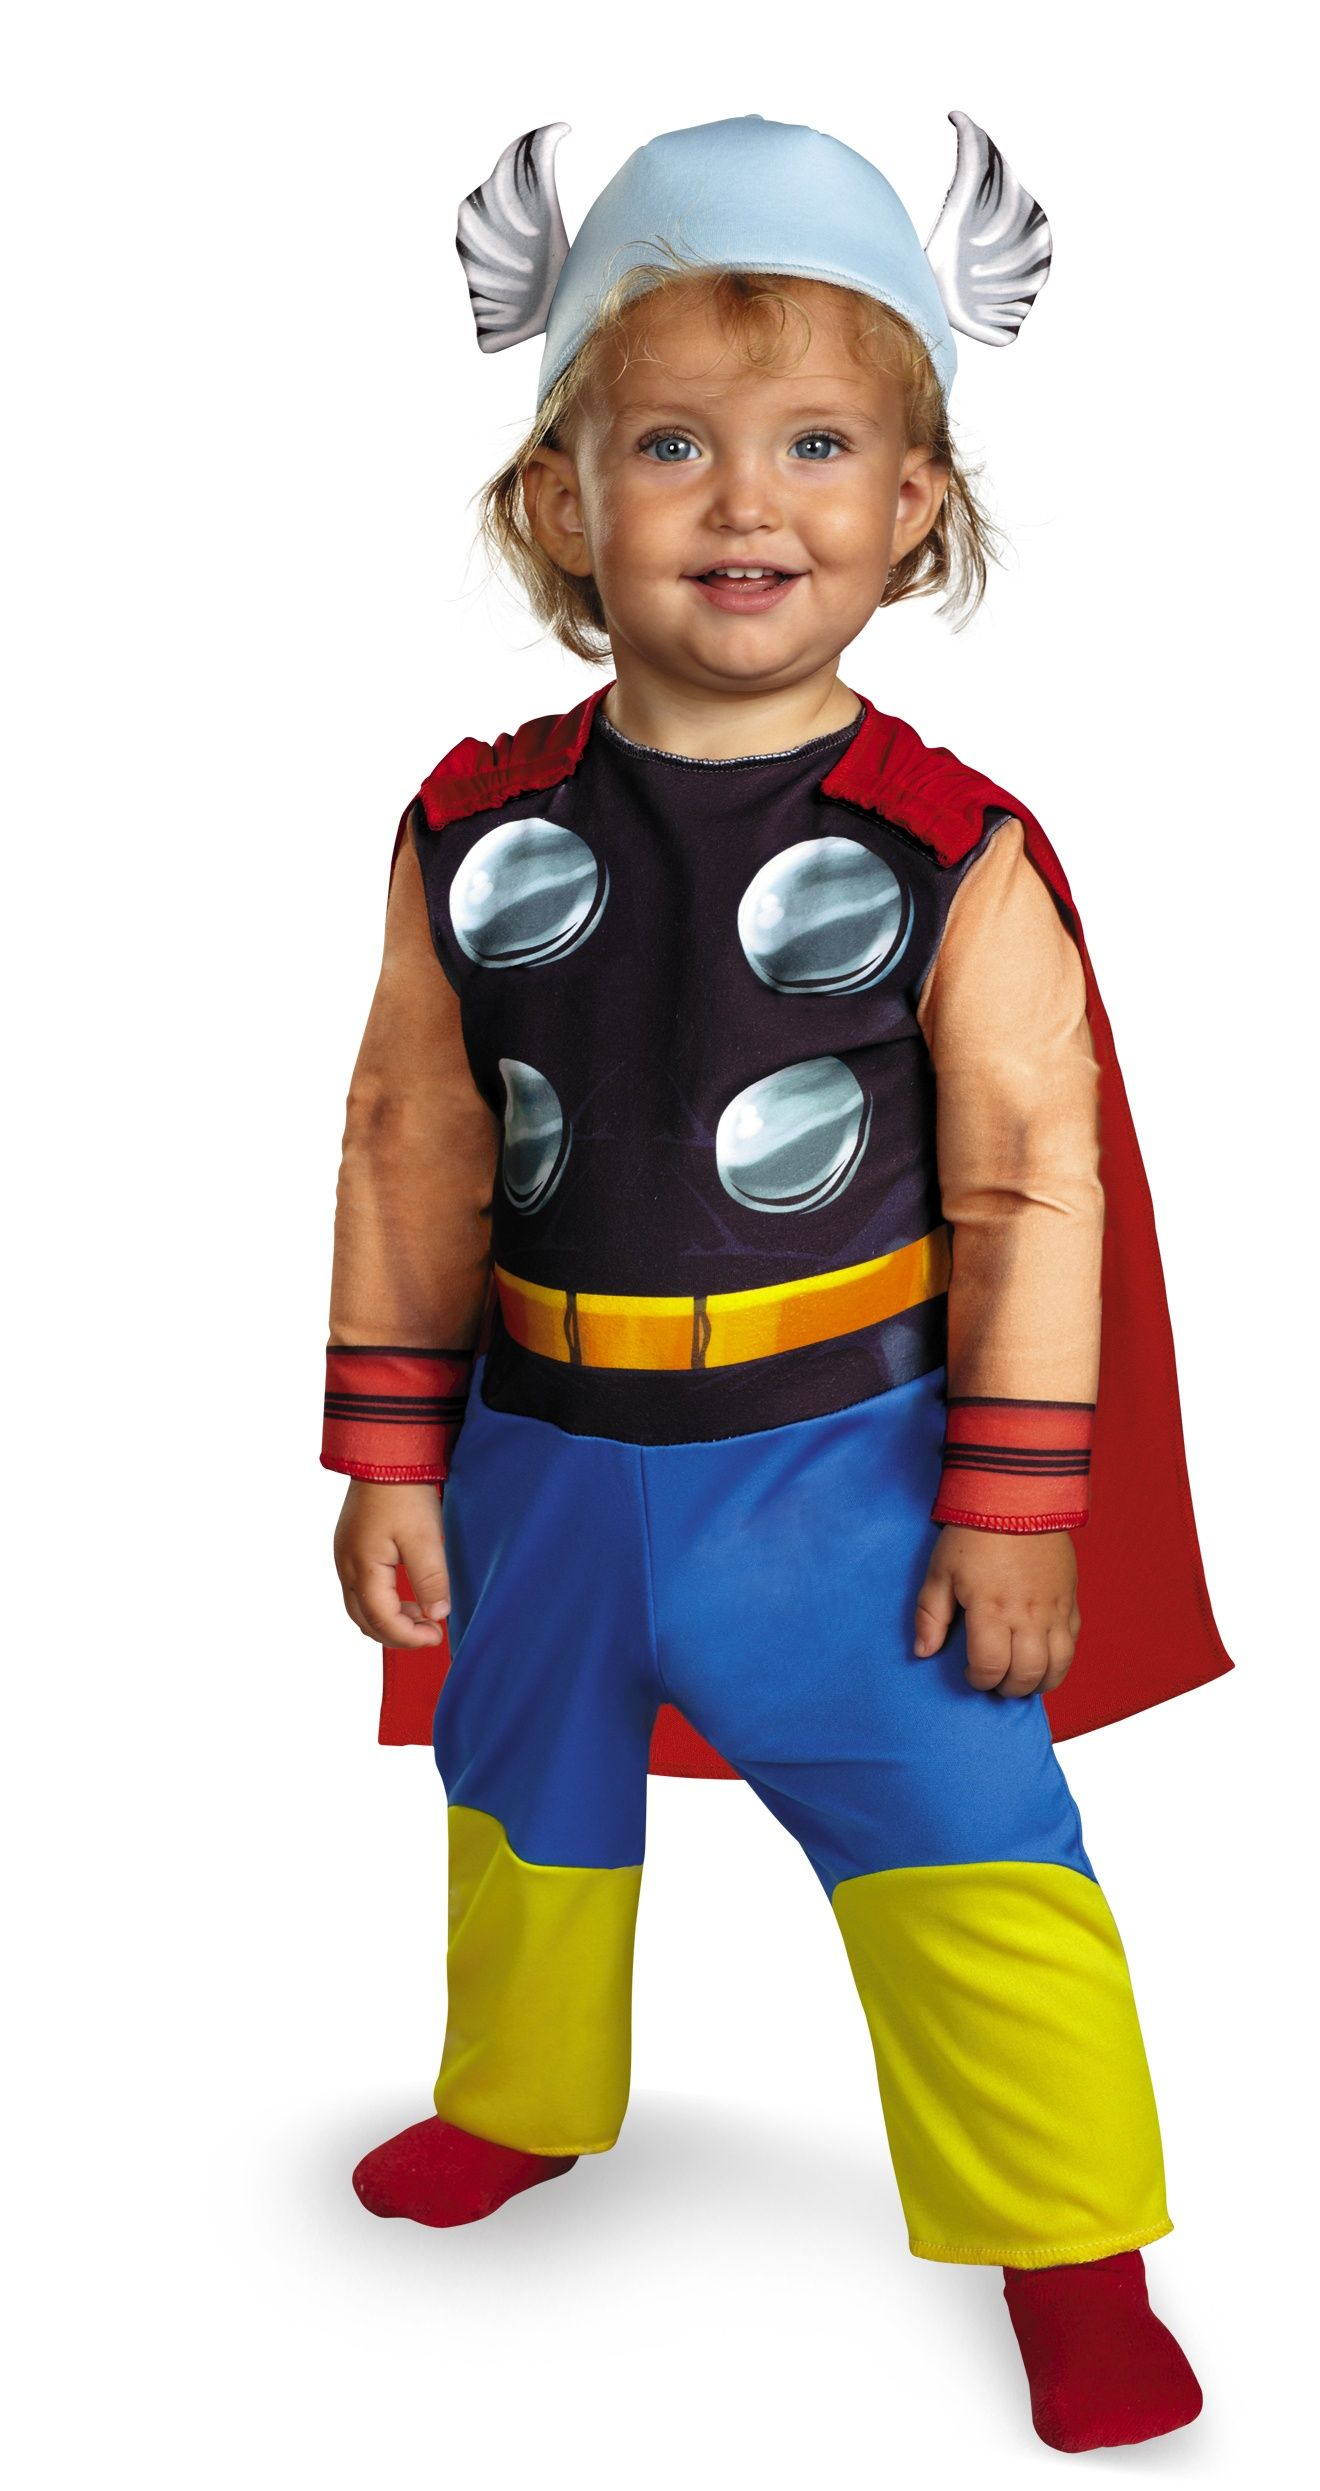 Thor Baby Costume | Costumes | Pinterest | Baby costumes, Thor and ...